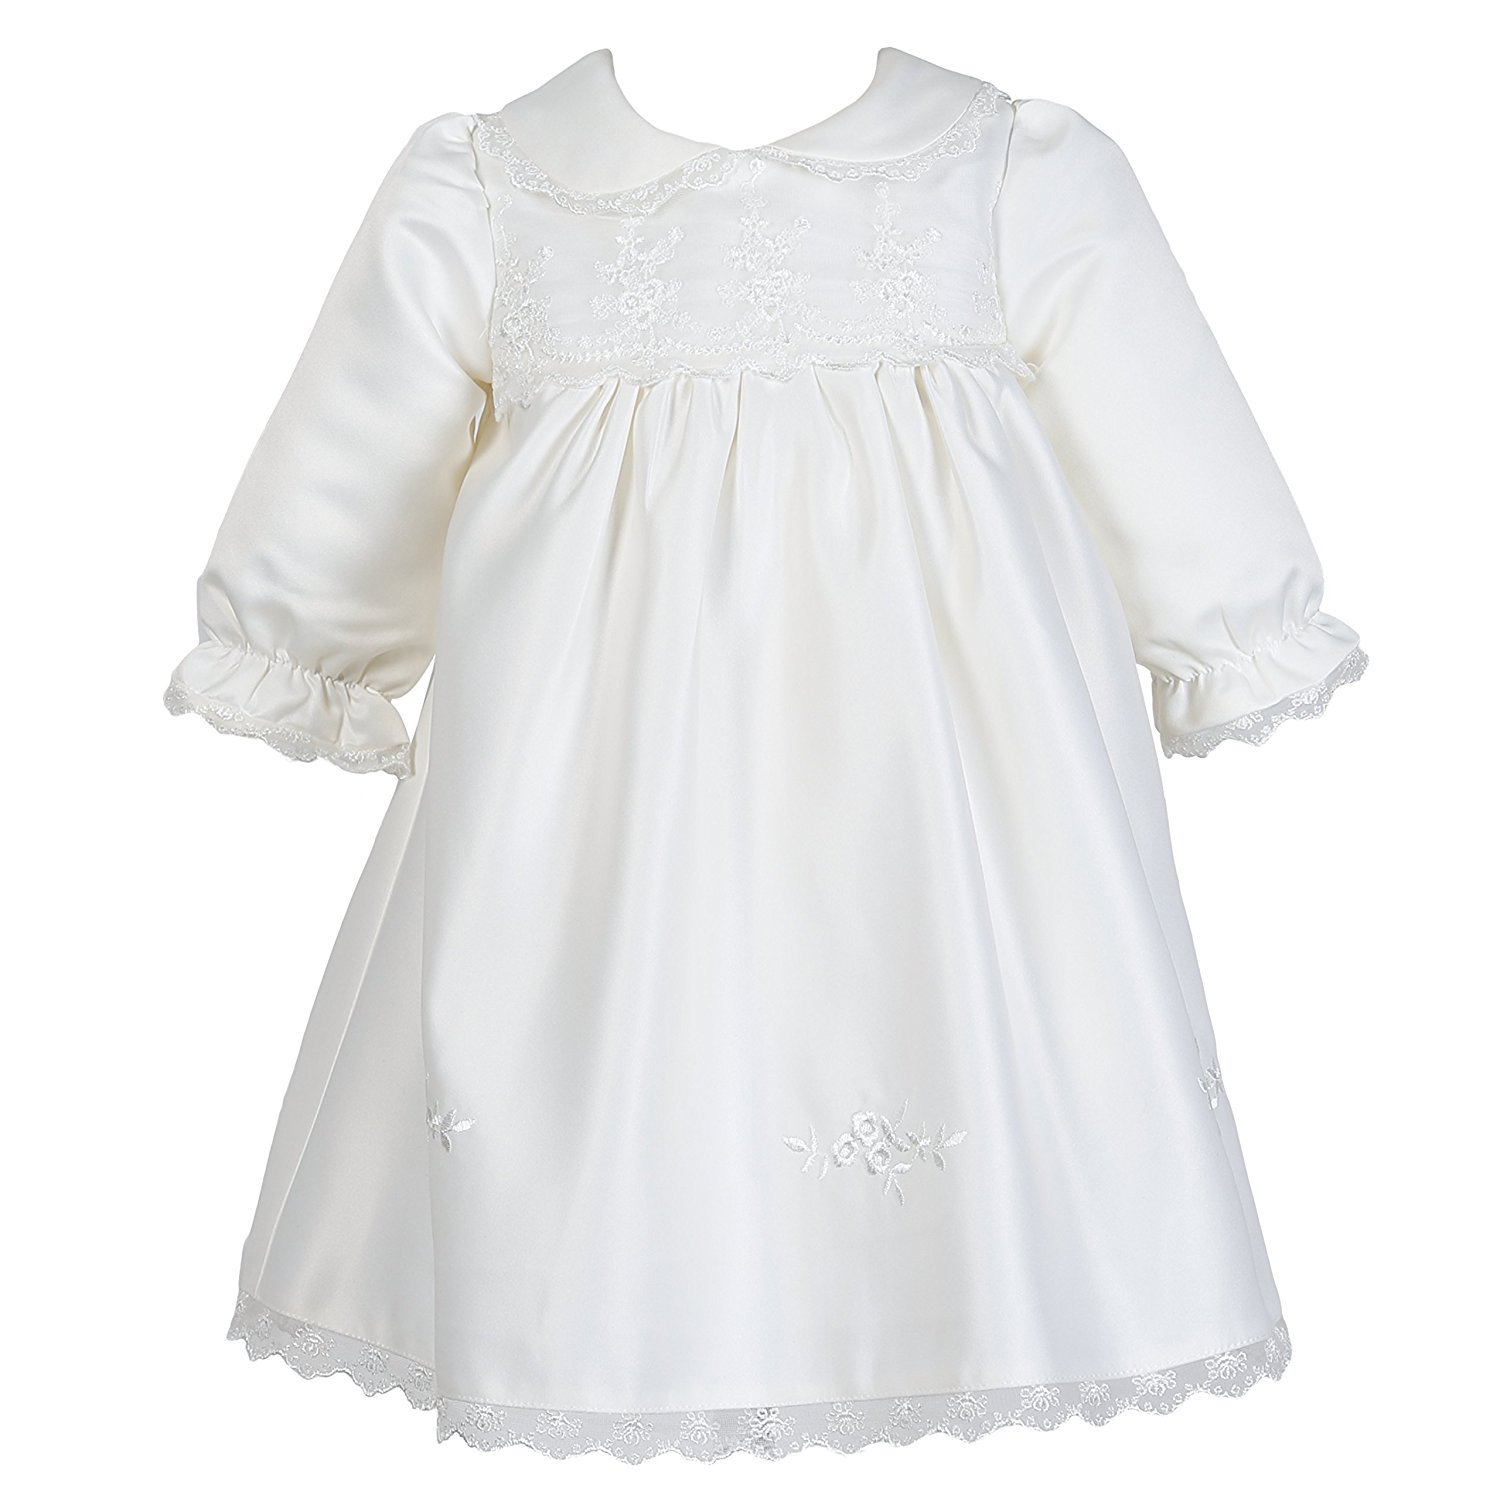 kelaixiang Baby Girls Flower Christening Baptism Dress Formal Party Special Occasion Dresses For Toddler